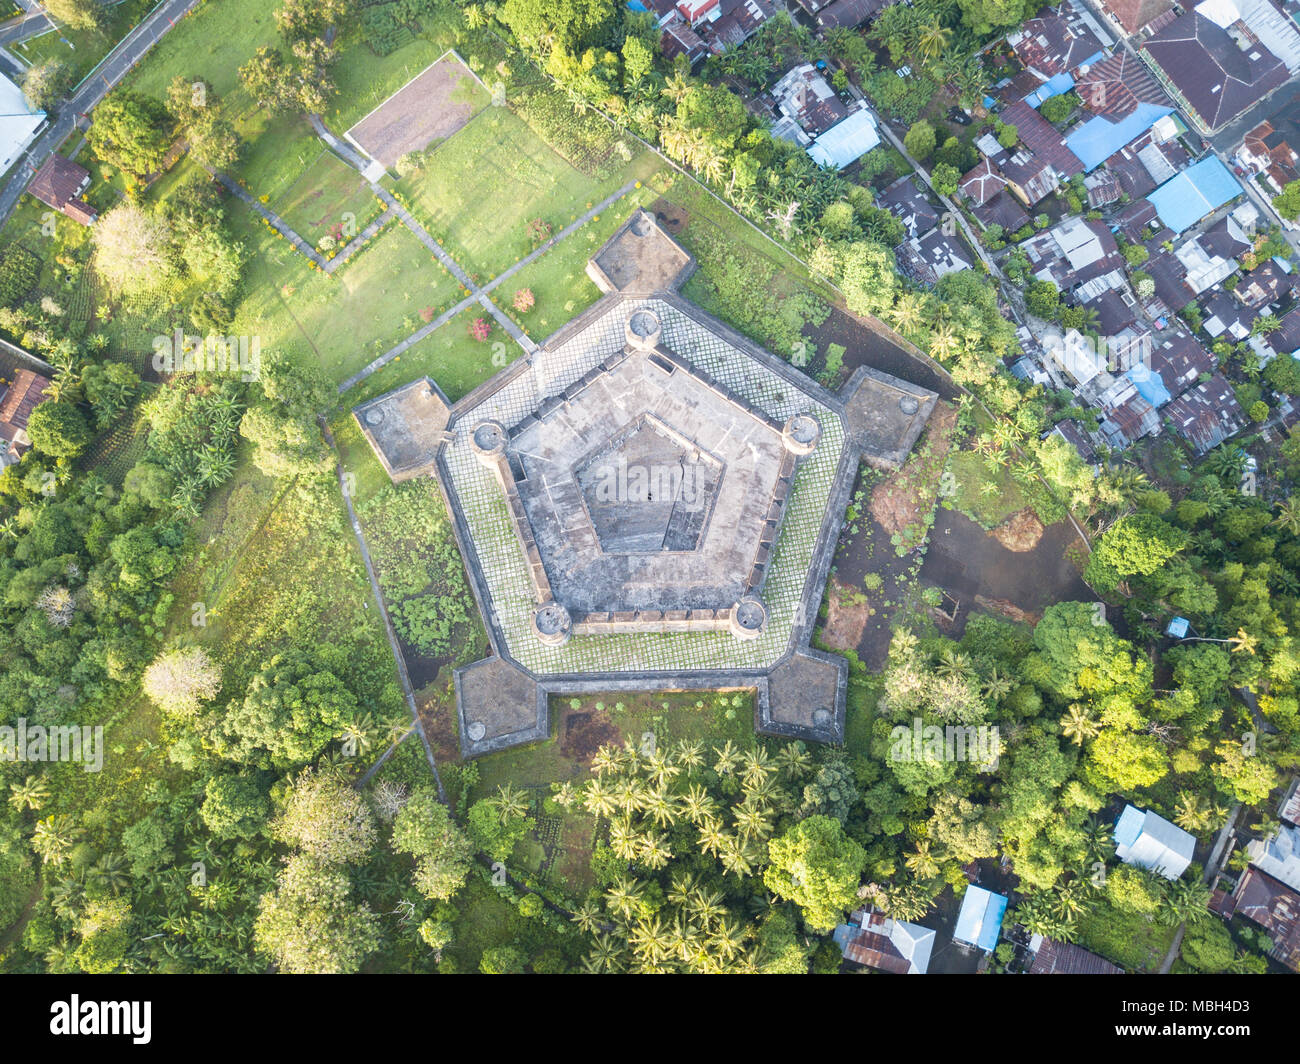 Fort Nassau was built by the Dutch on Banda Neira in the Banda Sea. This remote region is in the Coral Triangle and has high marine biodiversity. Stock Photo